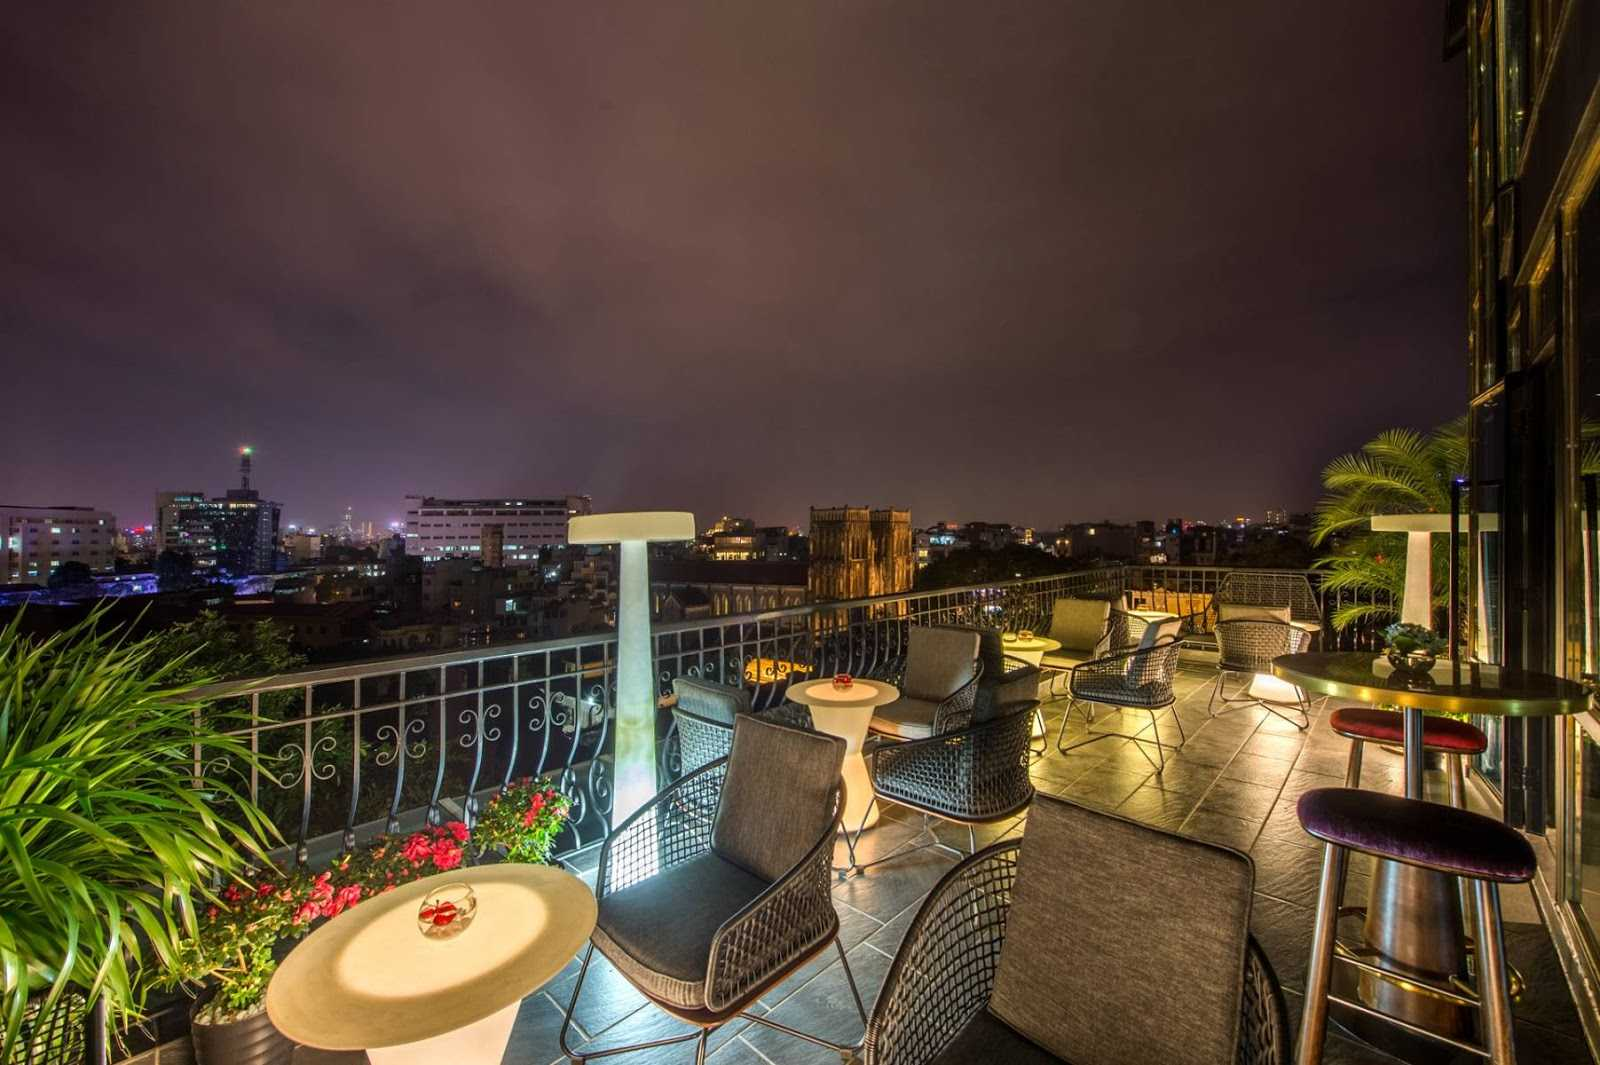 hanoi rooftop bars - the chi rooftop bar cathedral view